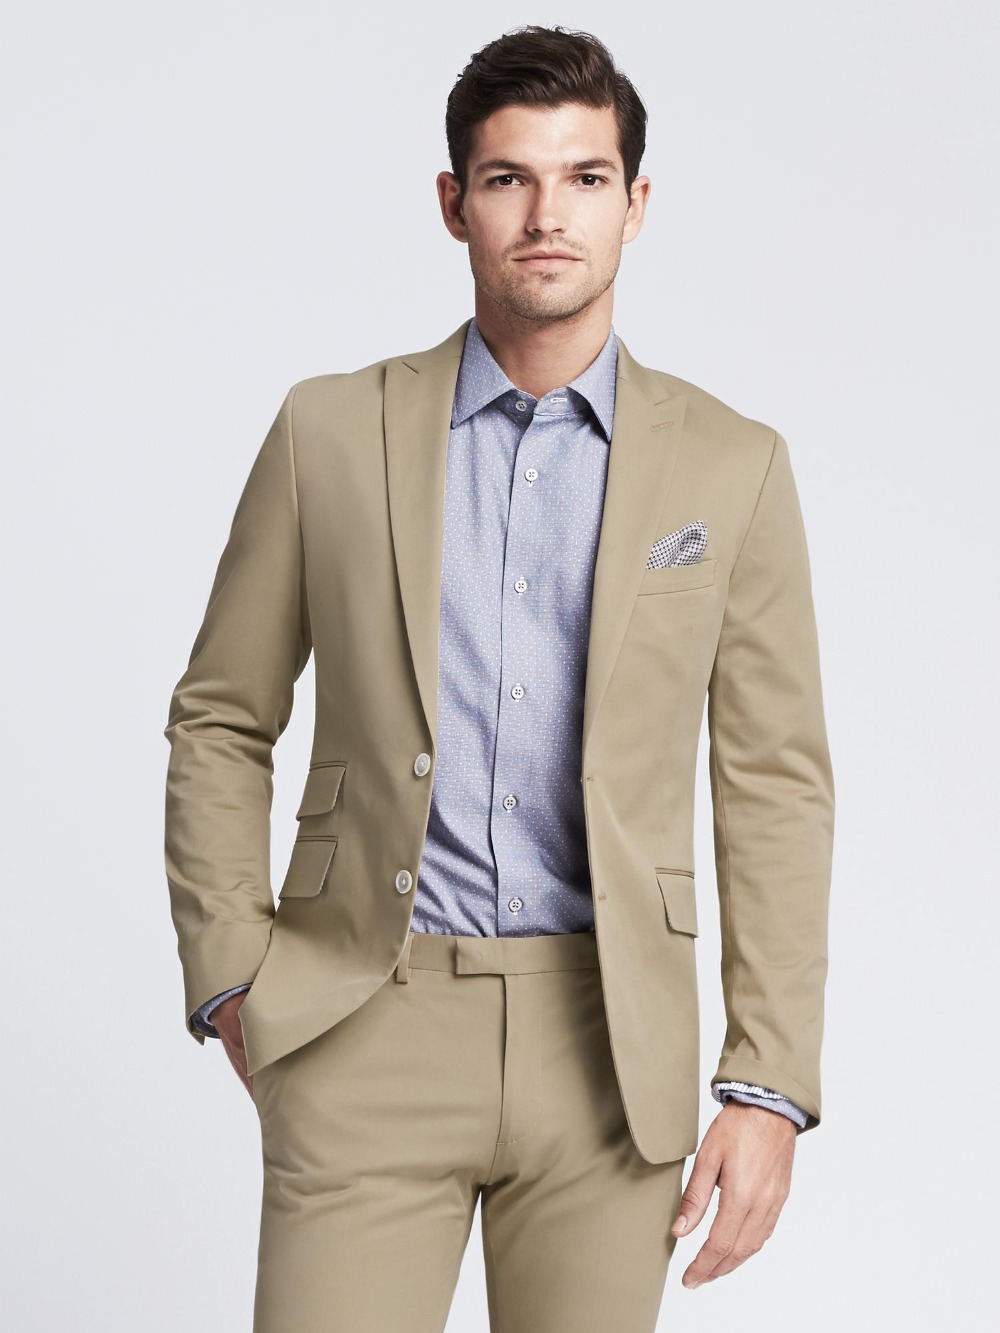 Formal Wear & Wedding Attire for Men Find everything you need for that special day by browsing the Belk collection of wedding attire and formal wear for men. The selection features a variety of handsome suits and blazers, well-tailored dress shirts, formal dress shoes and accessories.